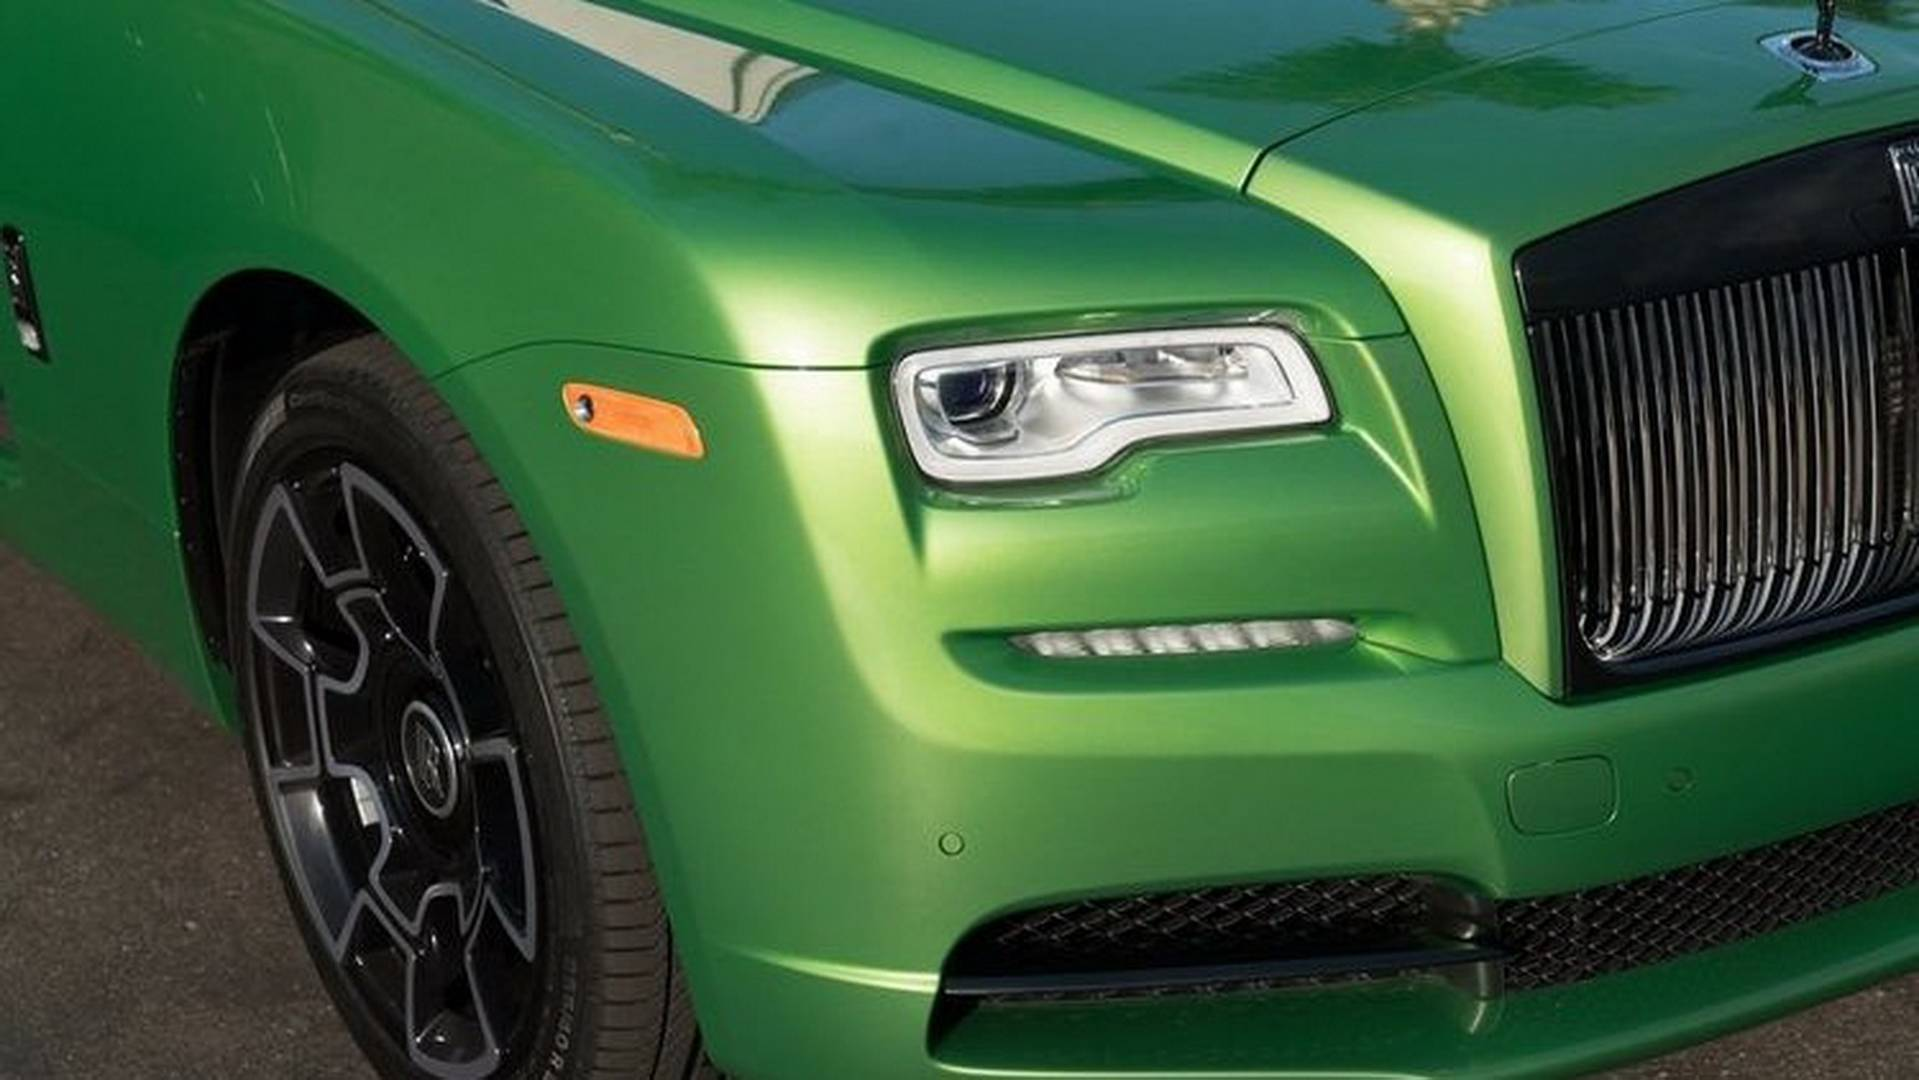 Rolls Royce Wraith Goes For The Java Green Color